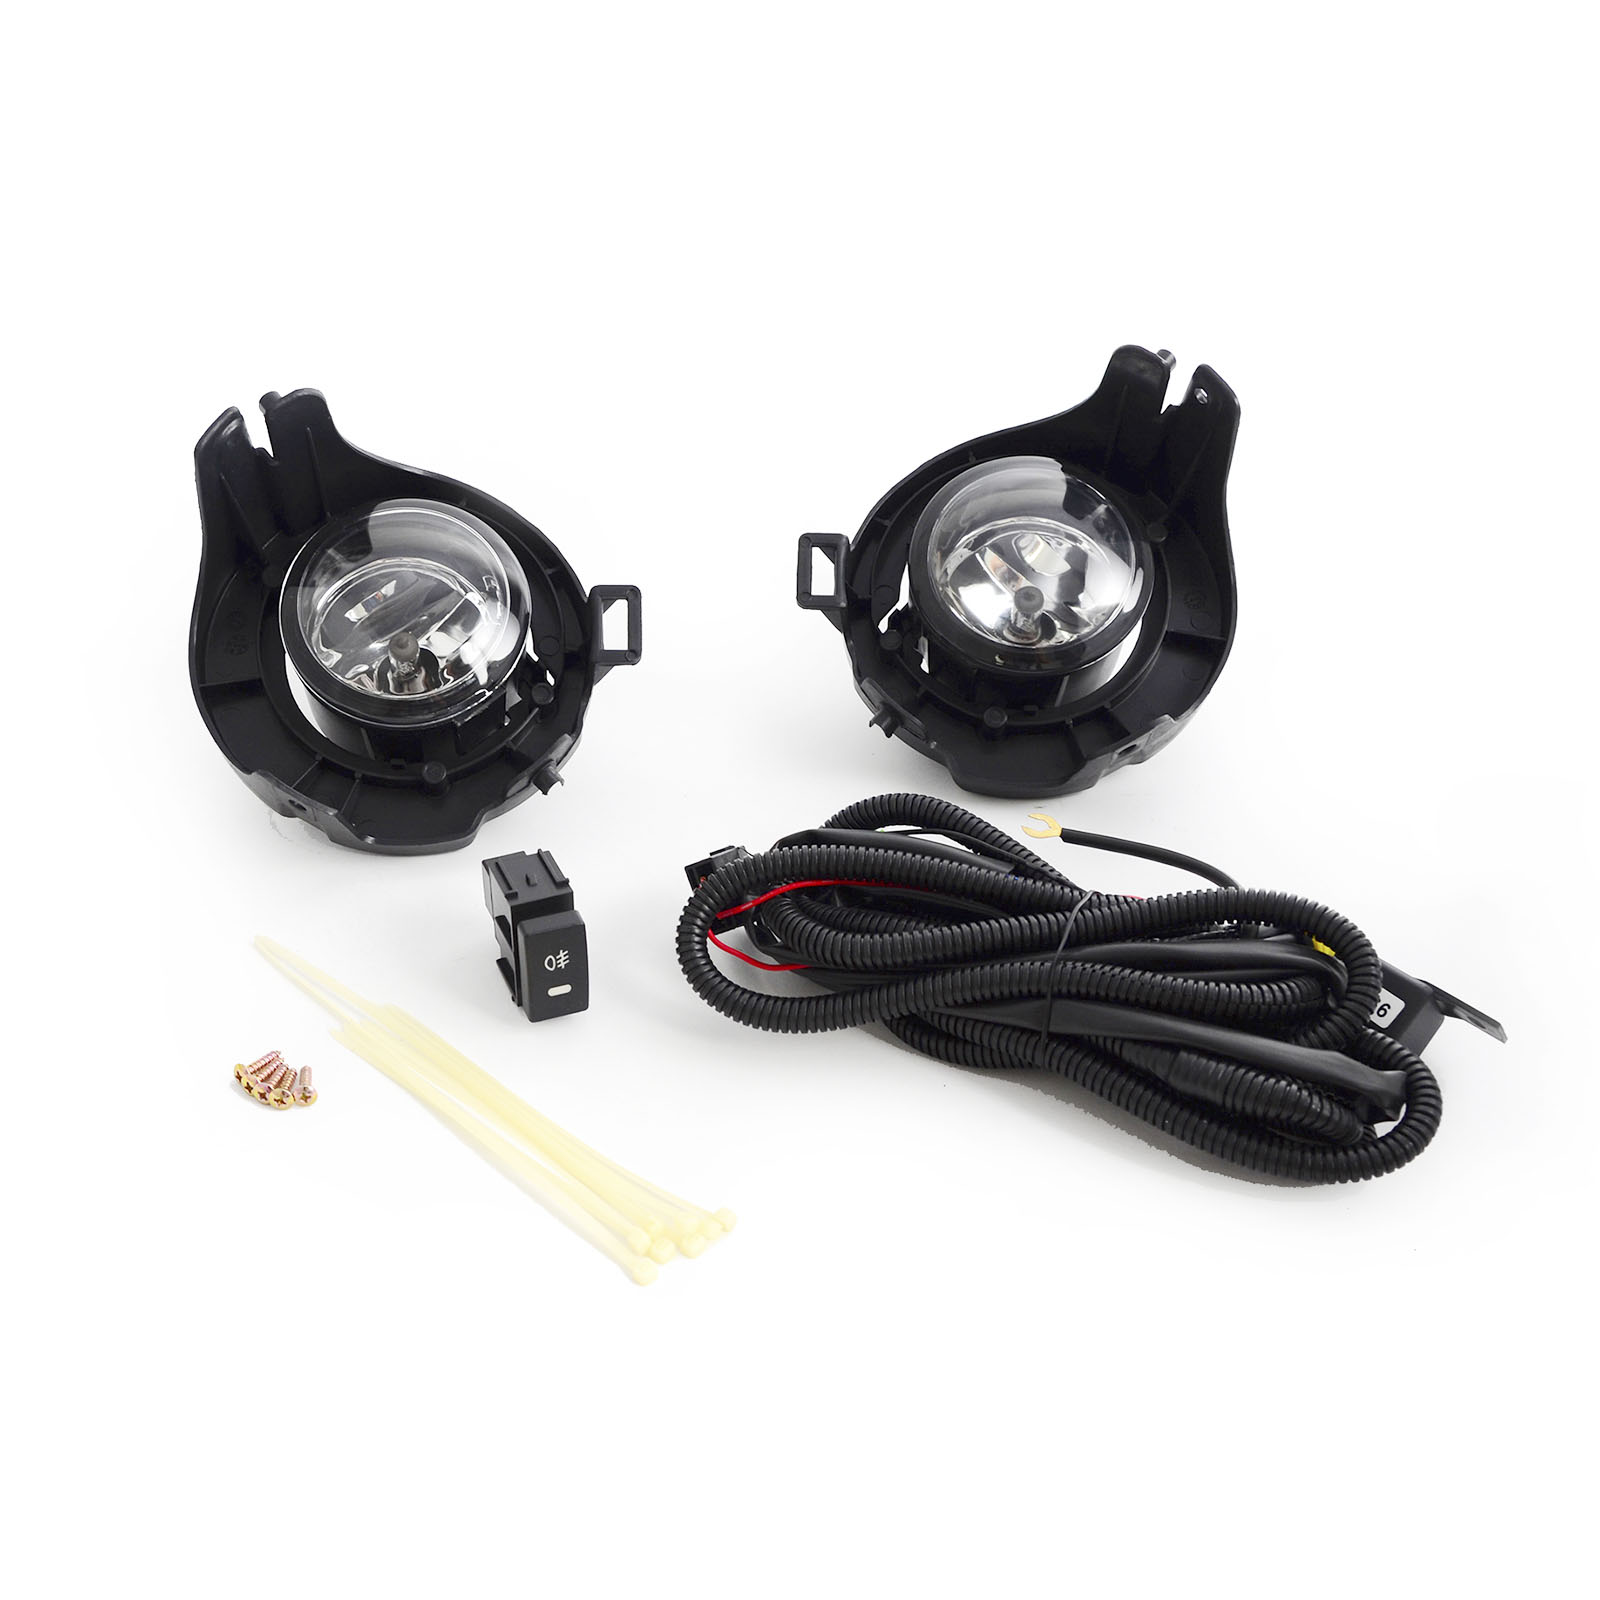 For Nissan Navara D40 2005-2014 Driving Fog Lights Lamps Complete Kit H11-12V 55W